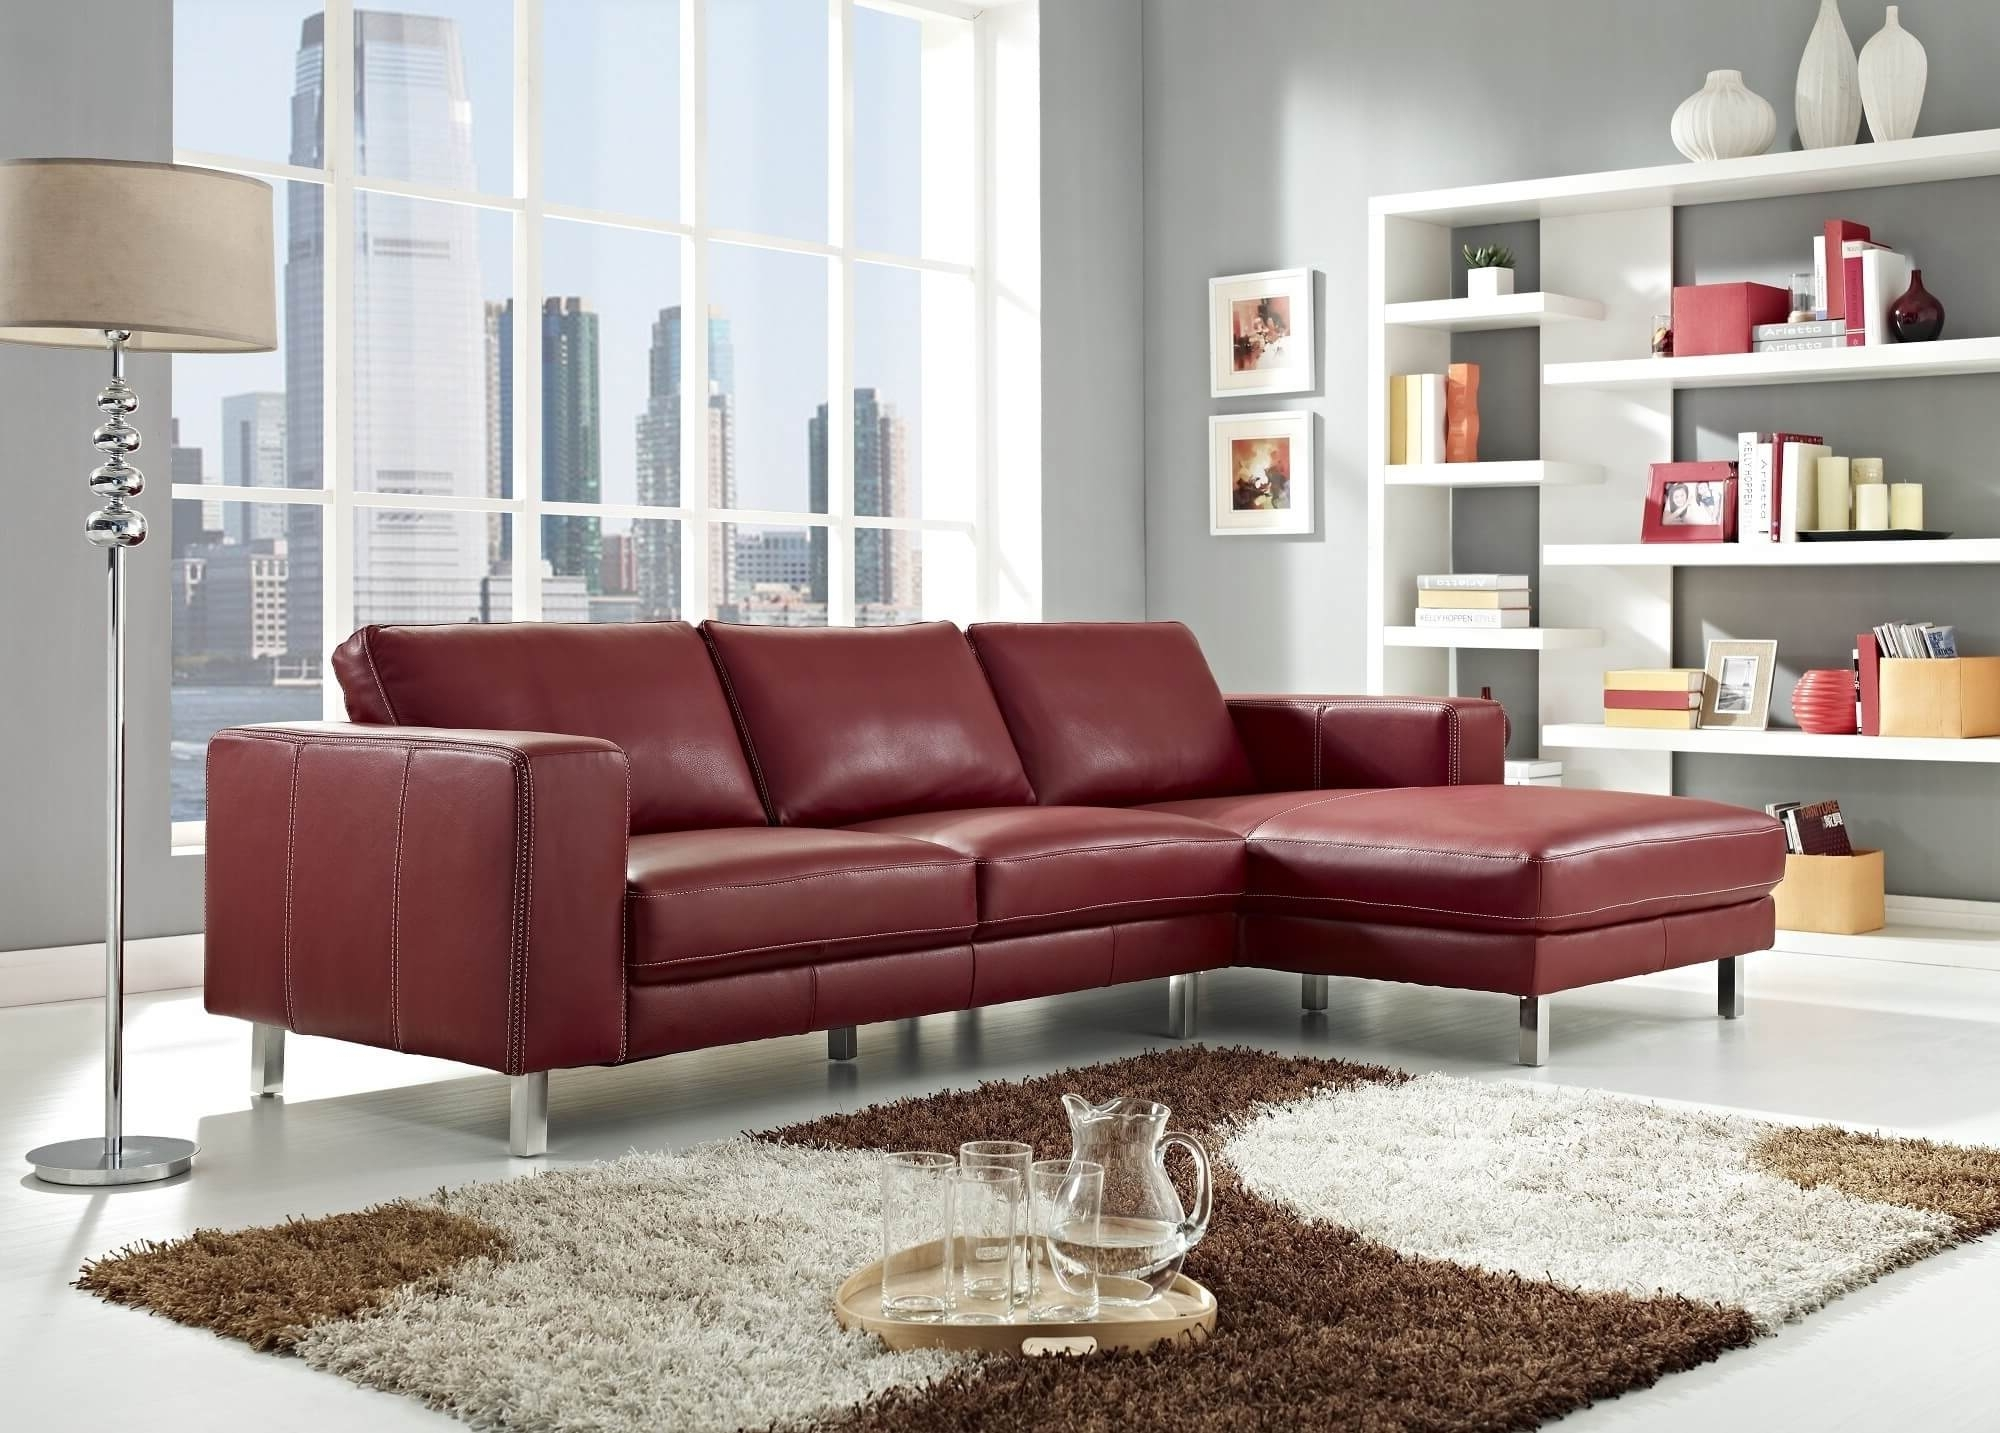 Most Current Stylish Modern Red Sectional Sofas Intended For Red Leather Couches For Living Room (View 6 of 20)